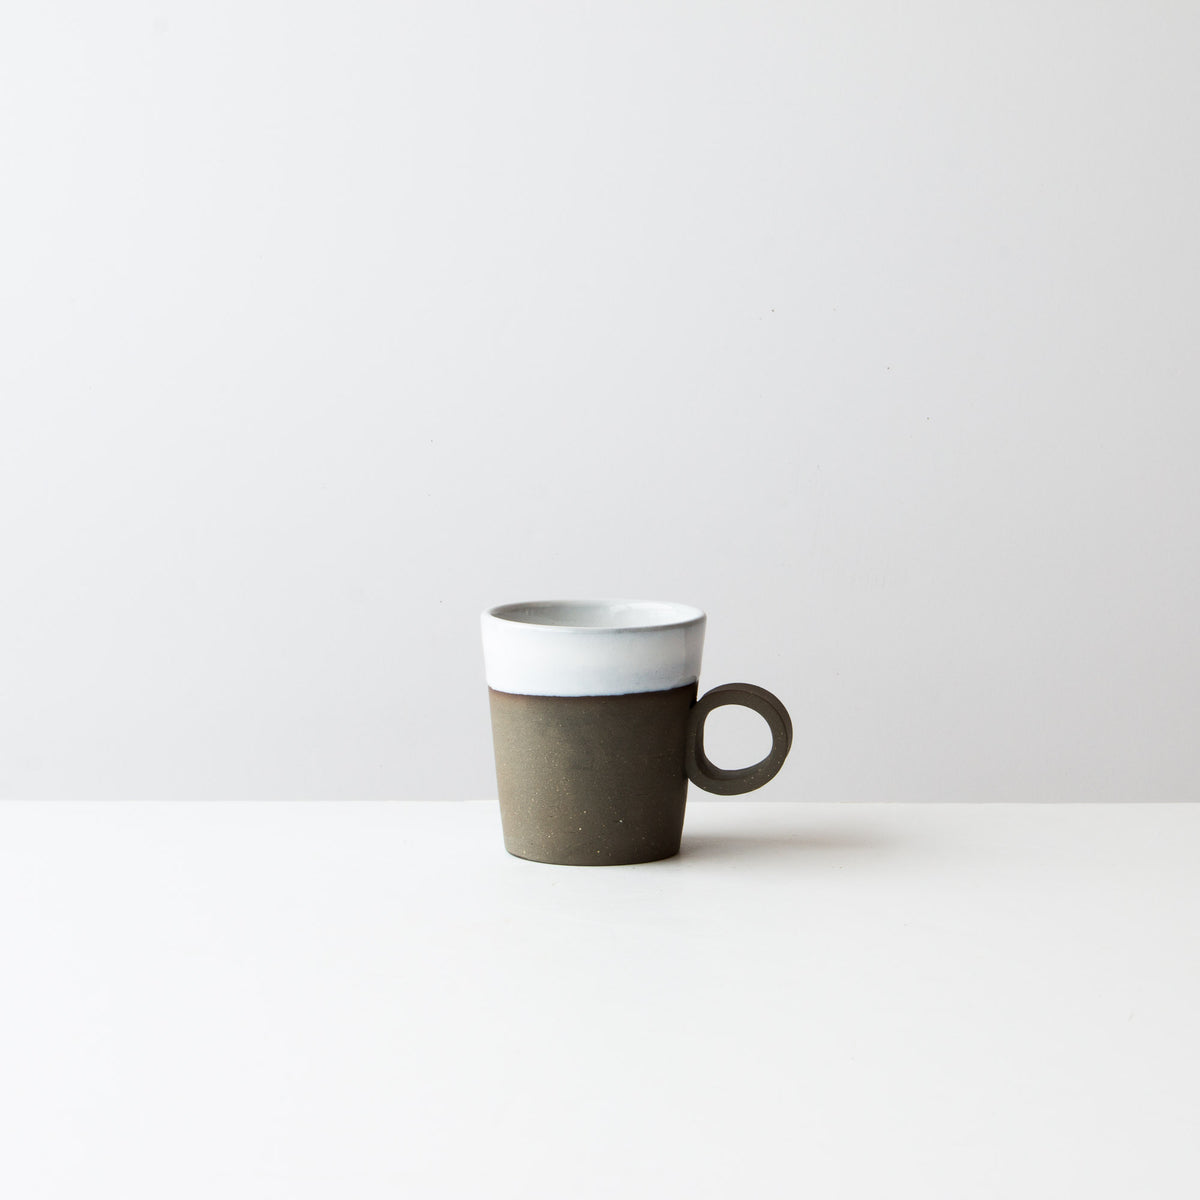 Handmade Ceramic Mug in Grey Clay - Sold by Chic & Basta